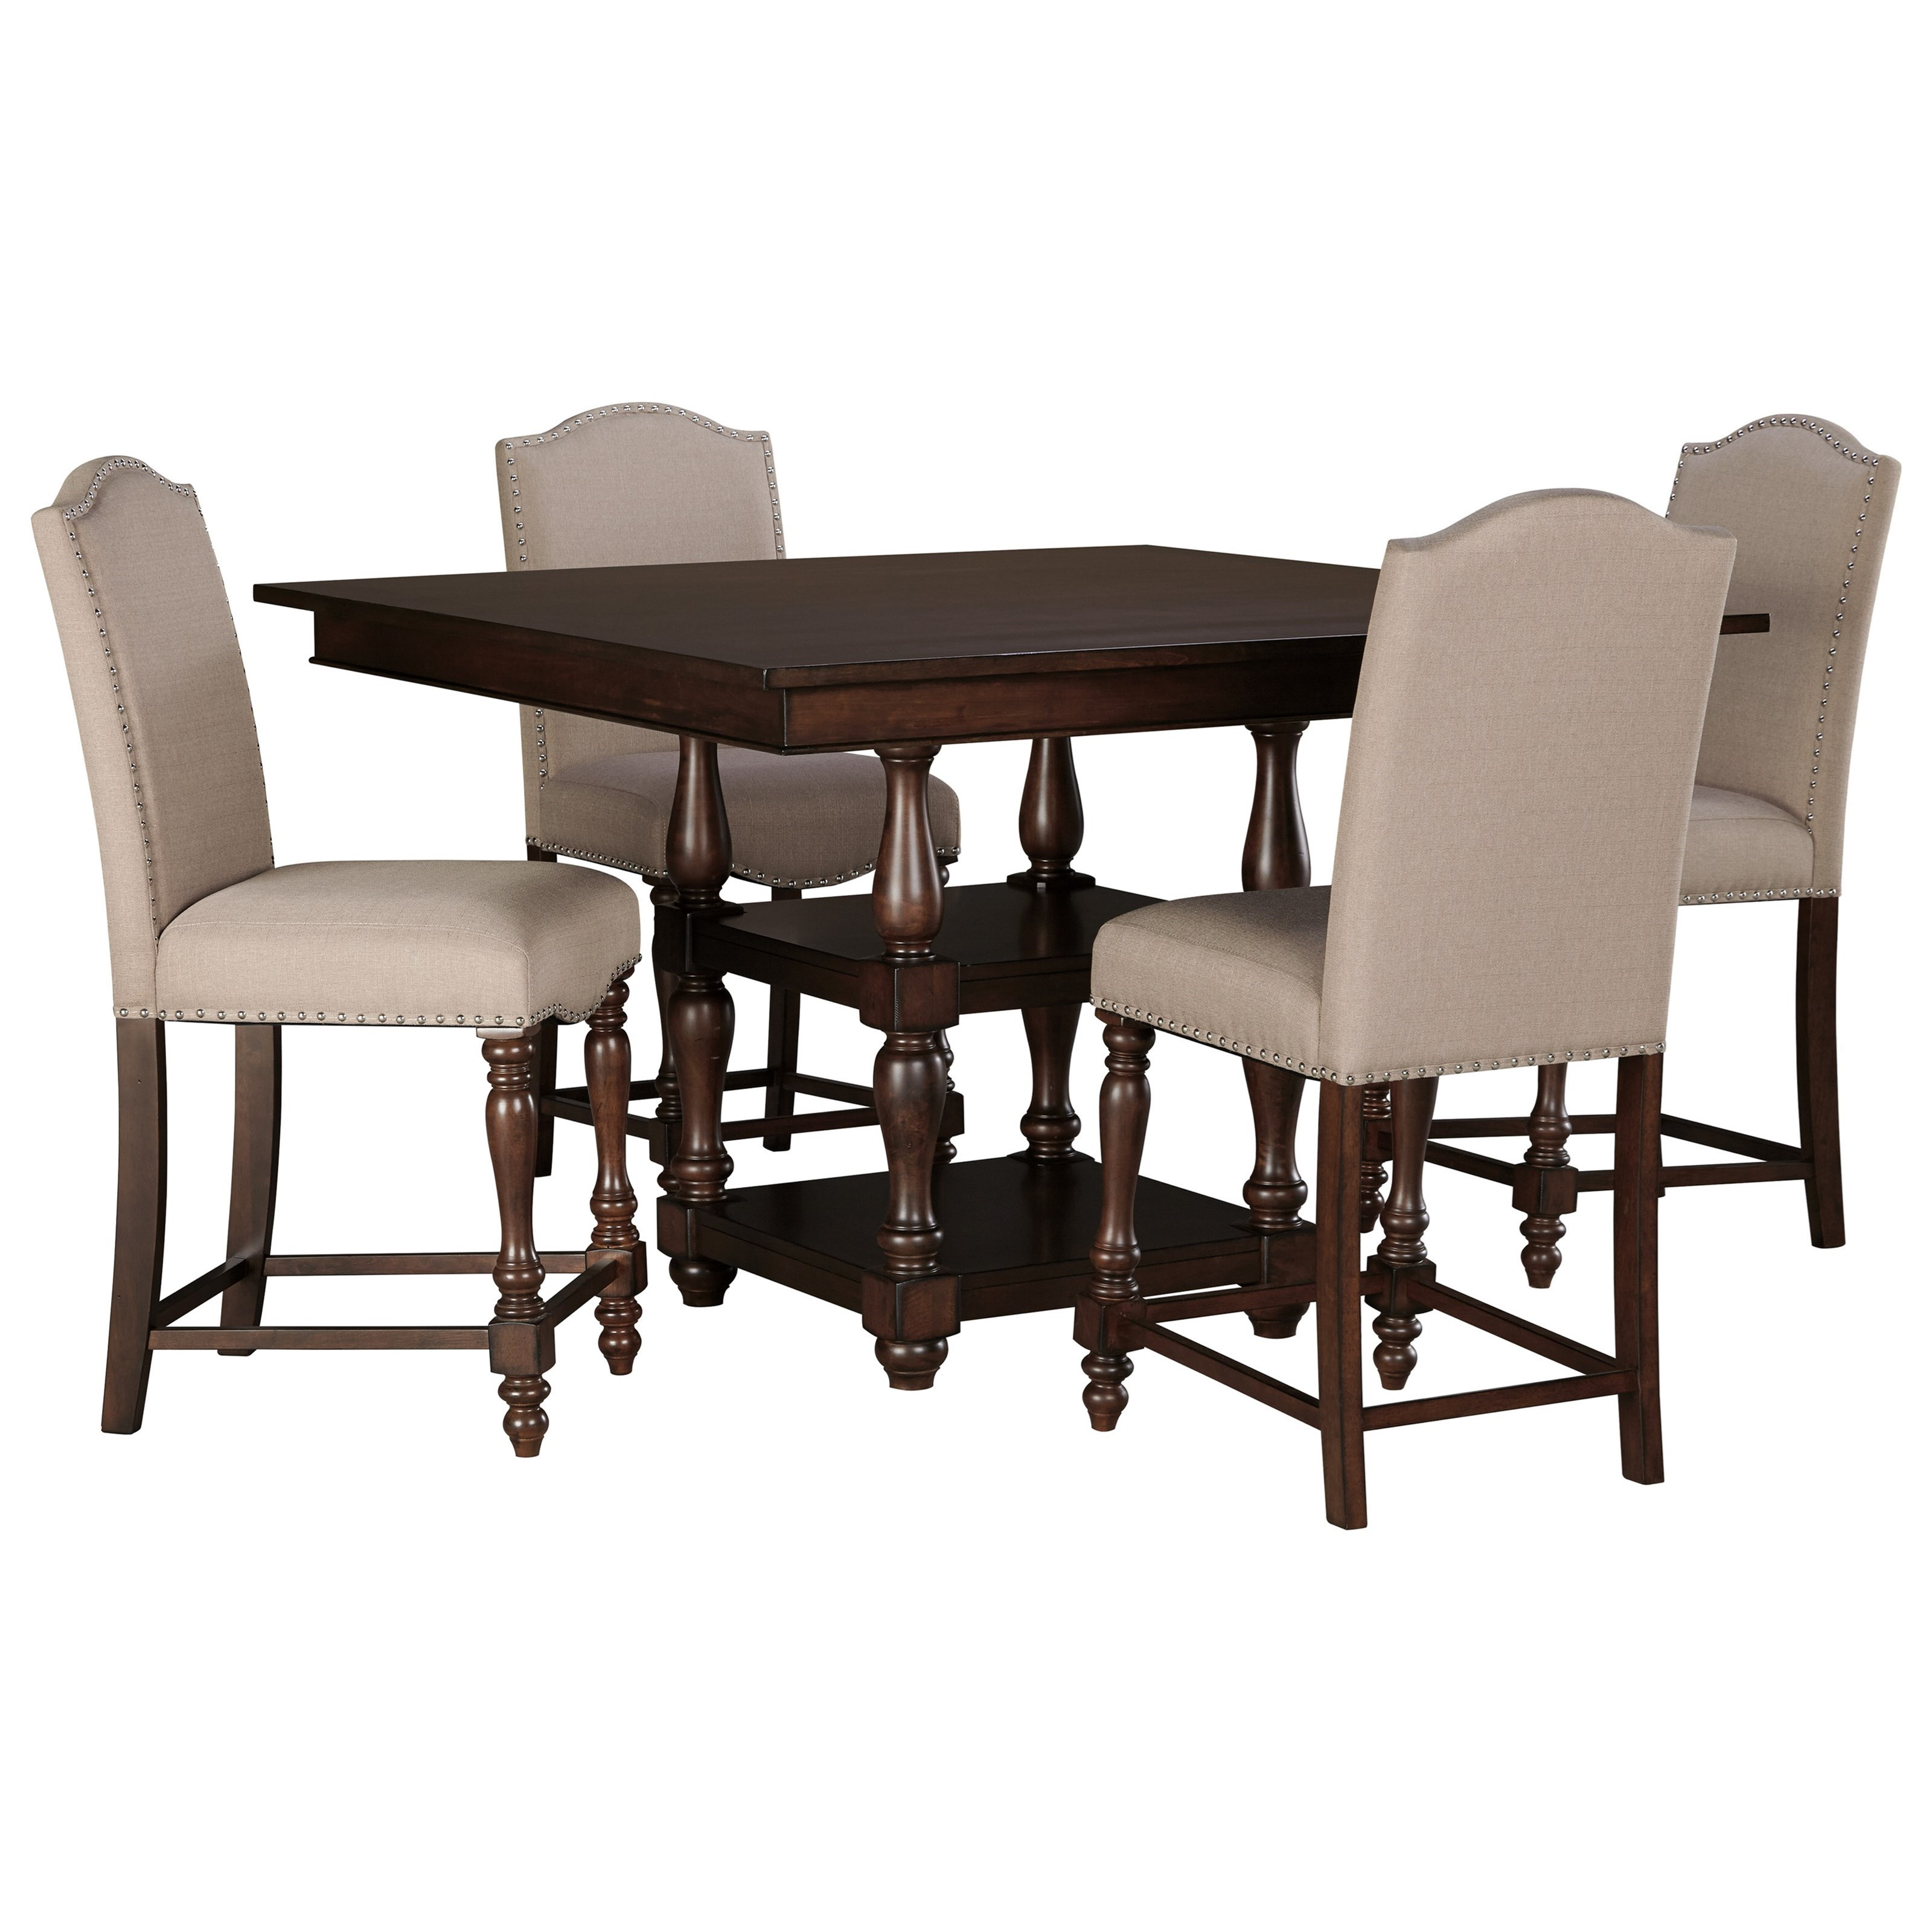 Signature design by ashley baxenburg 5 piece square dining for 5 piece dining room set with bench